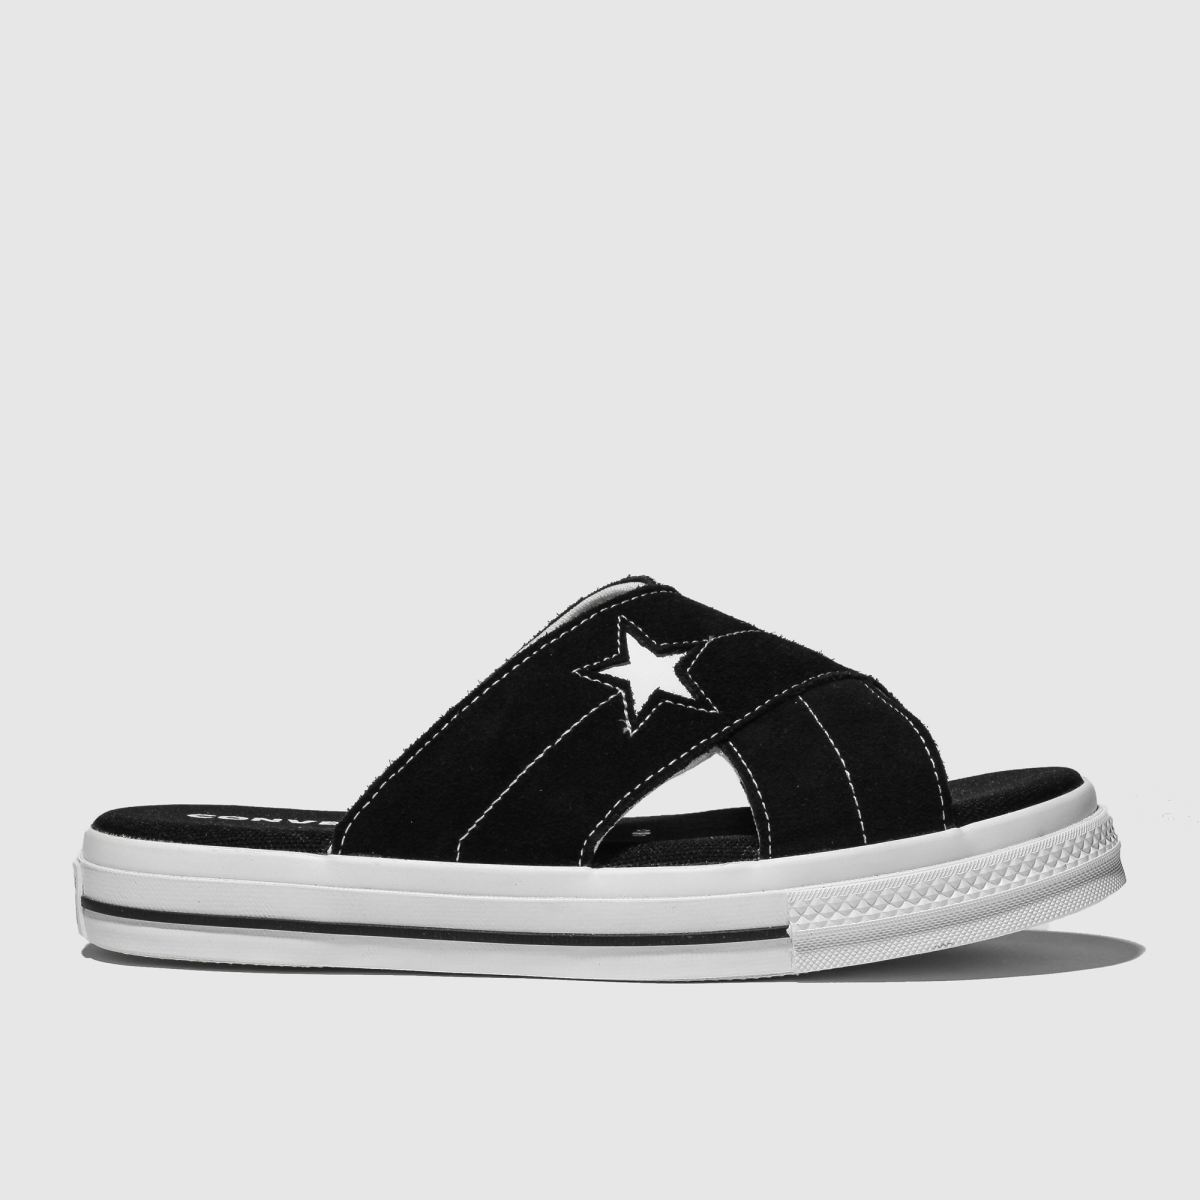 Converse Black & White One Star Sandal Sandals